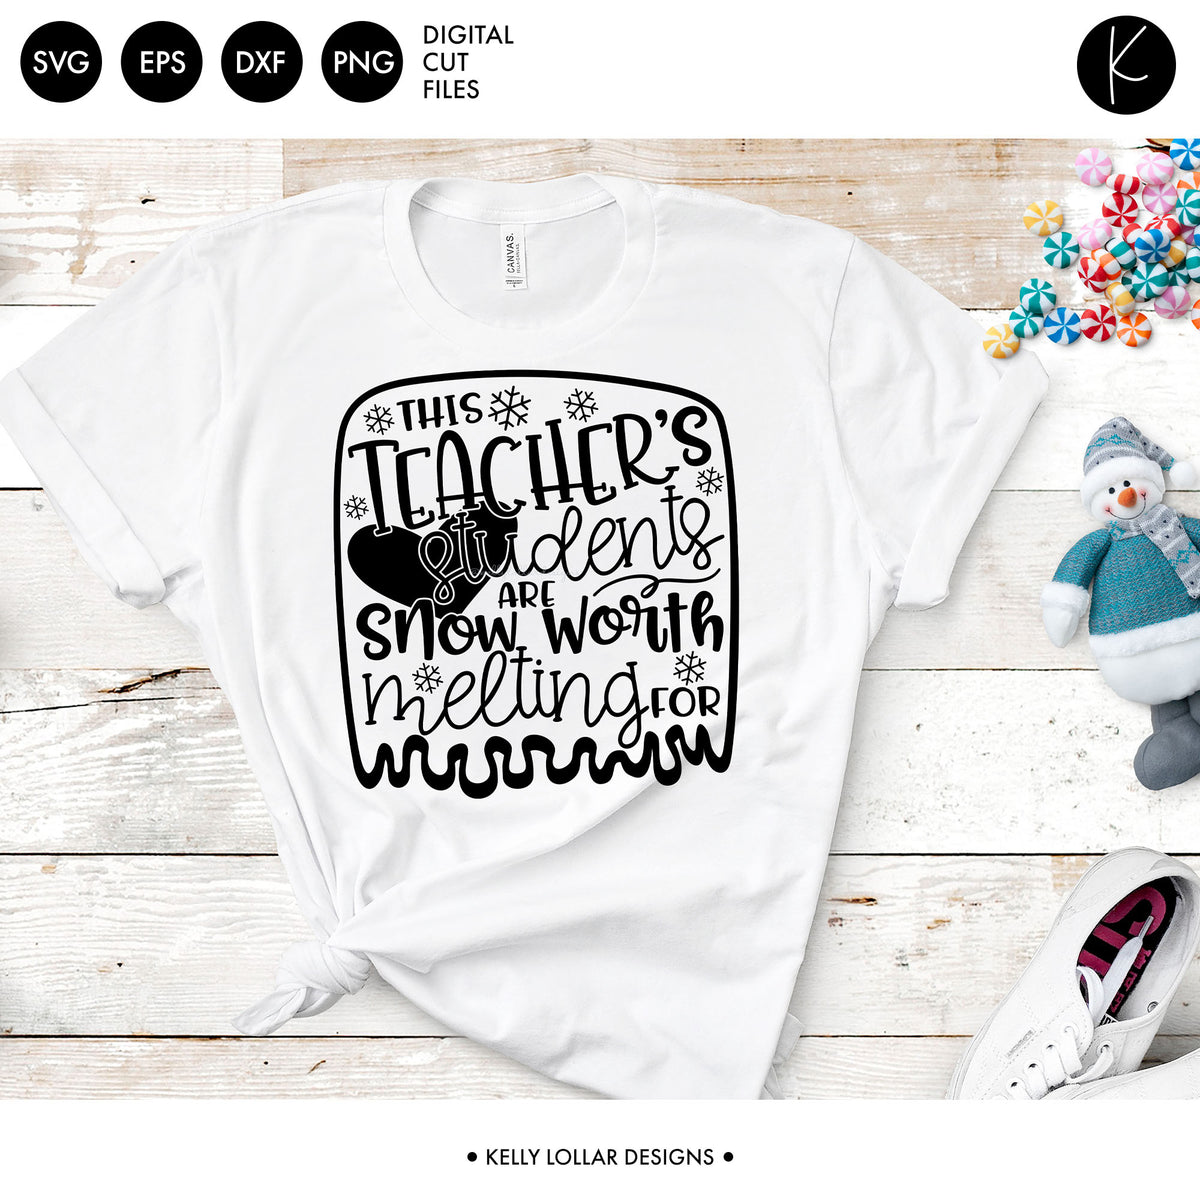 This Teacher's Students Are Worth Melting For | SVG DXF EPS PNG Cut Files